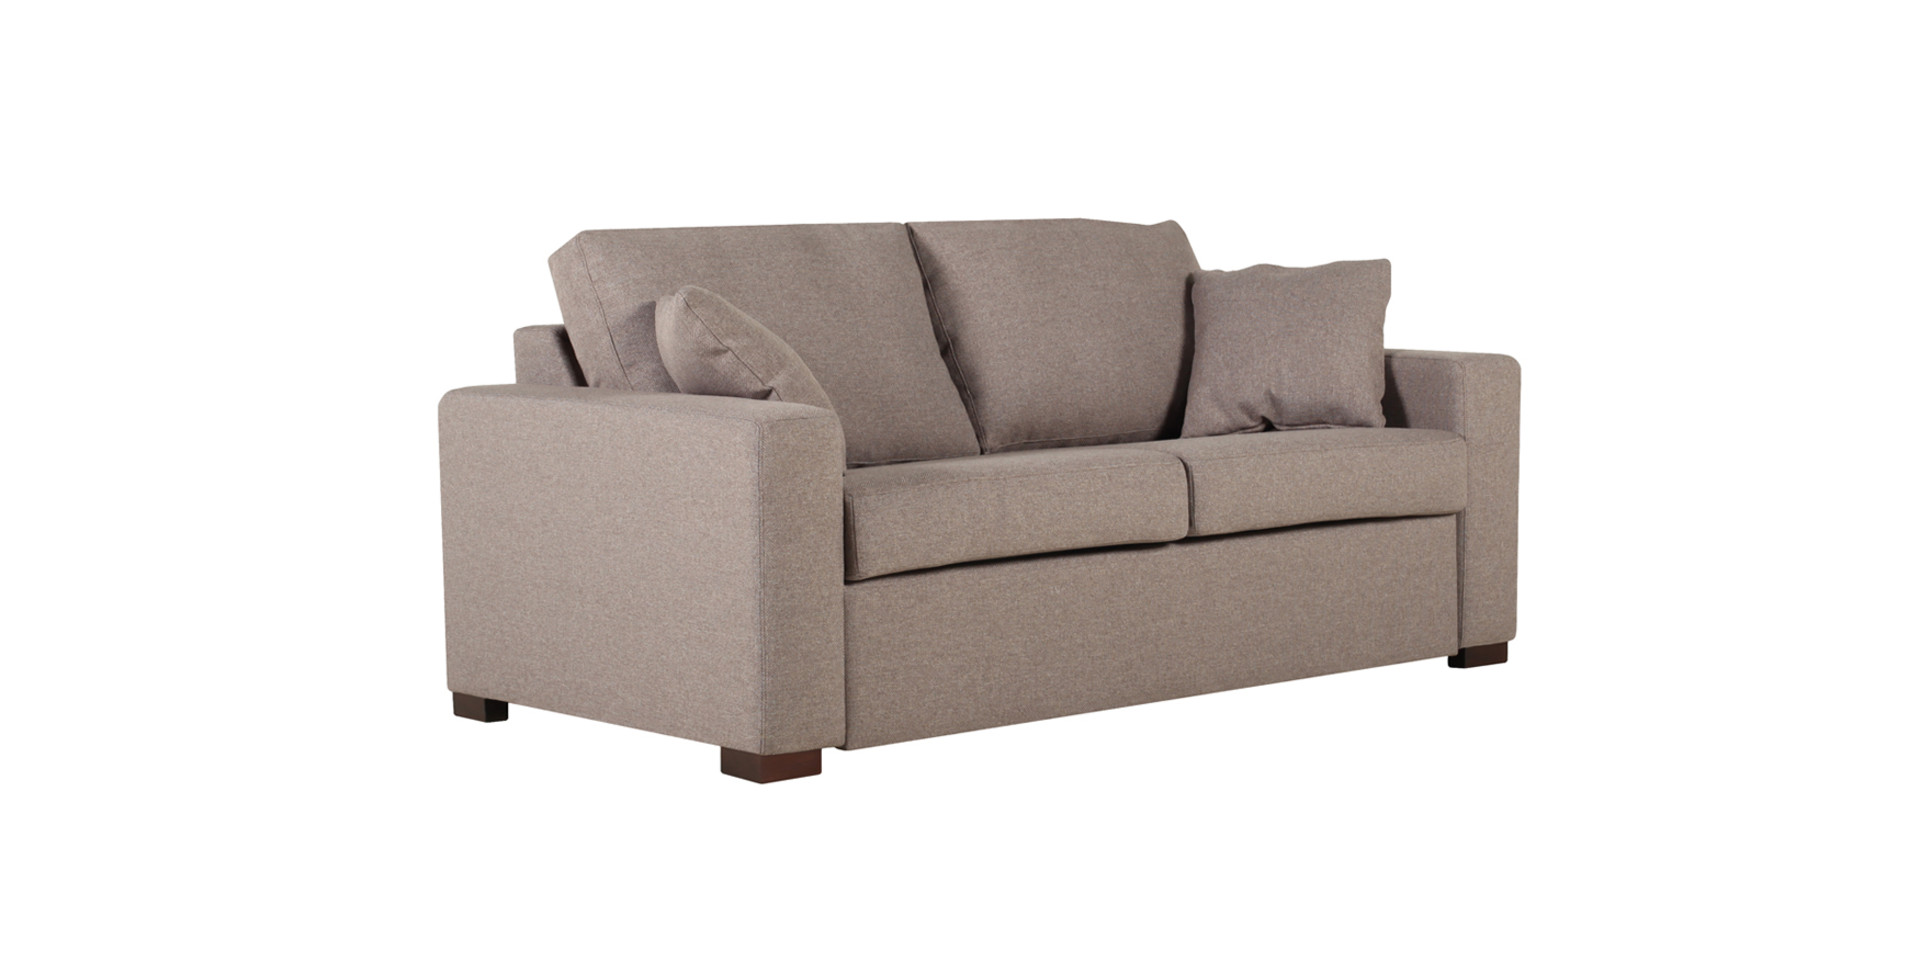 sits-tucson-canape-convertible-sofa_bed2_pacad8d8_grey_2